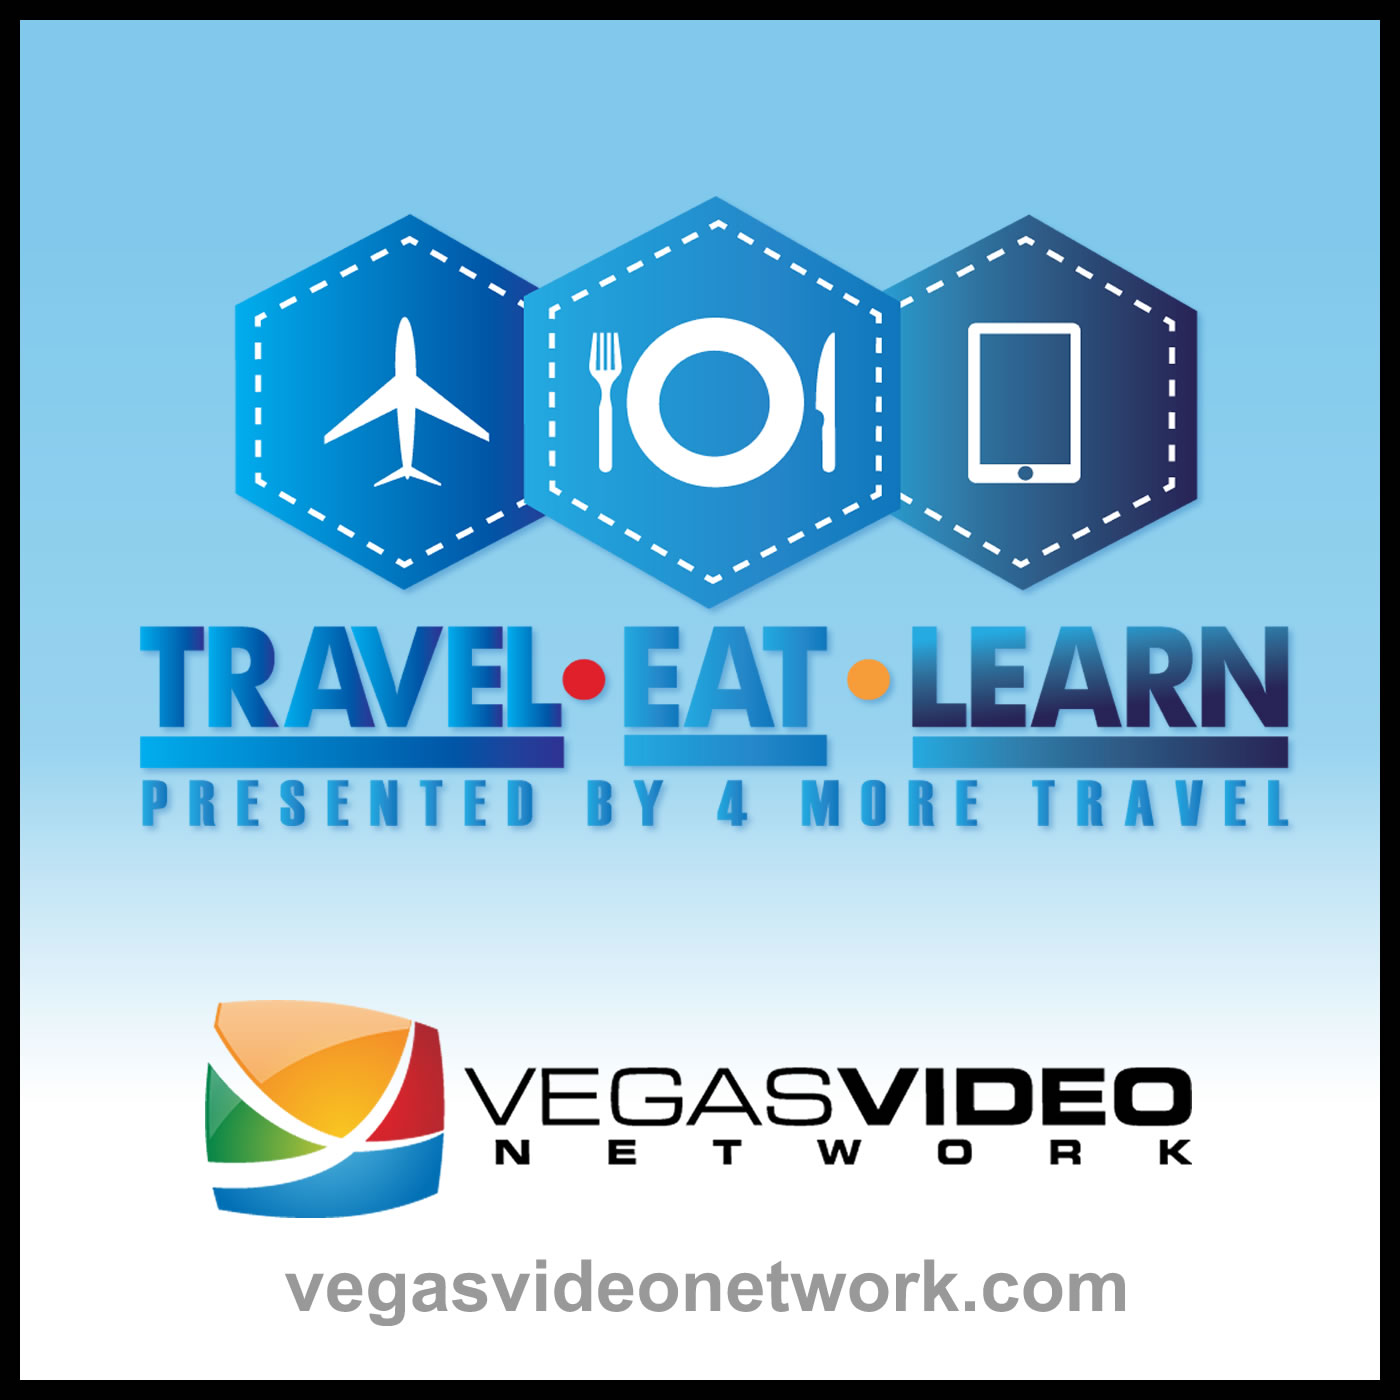 Travel Eat Learn